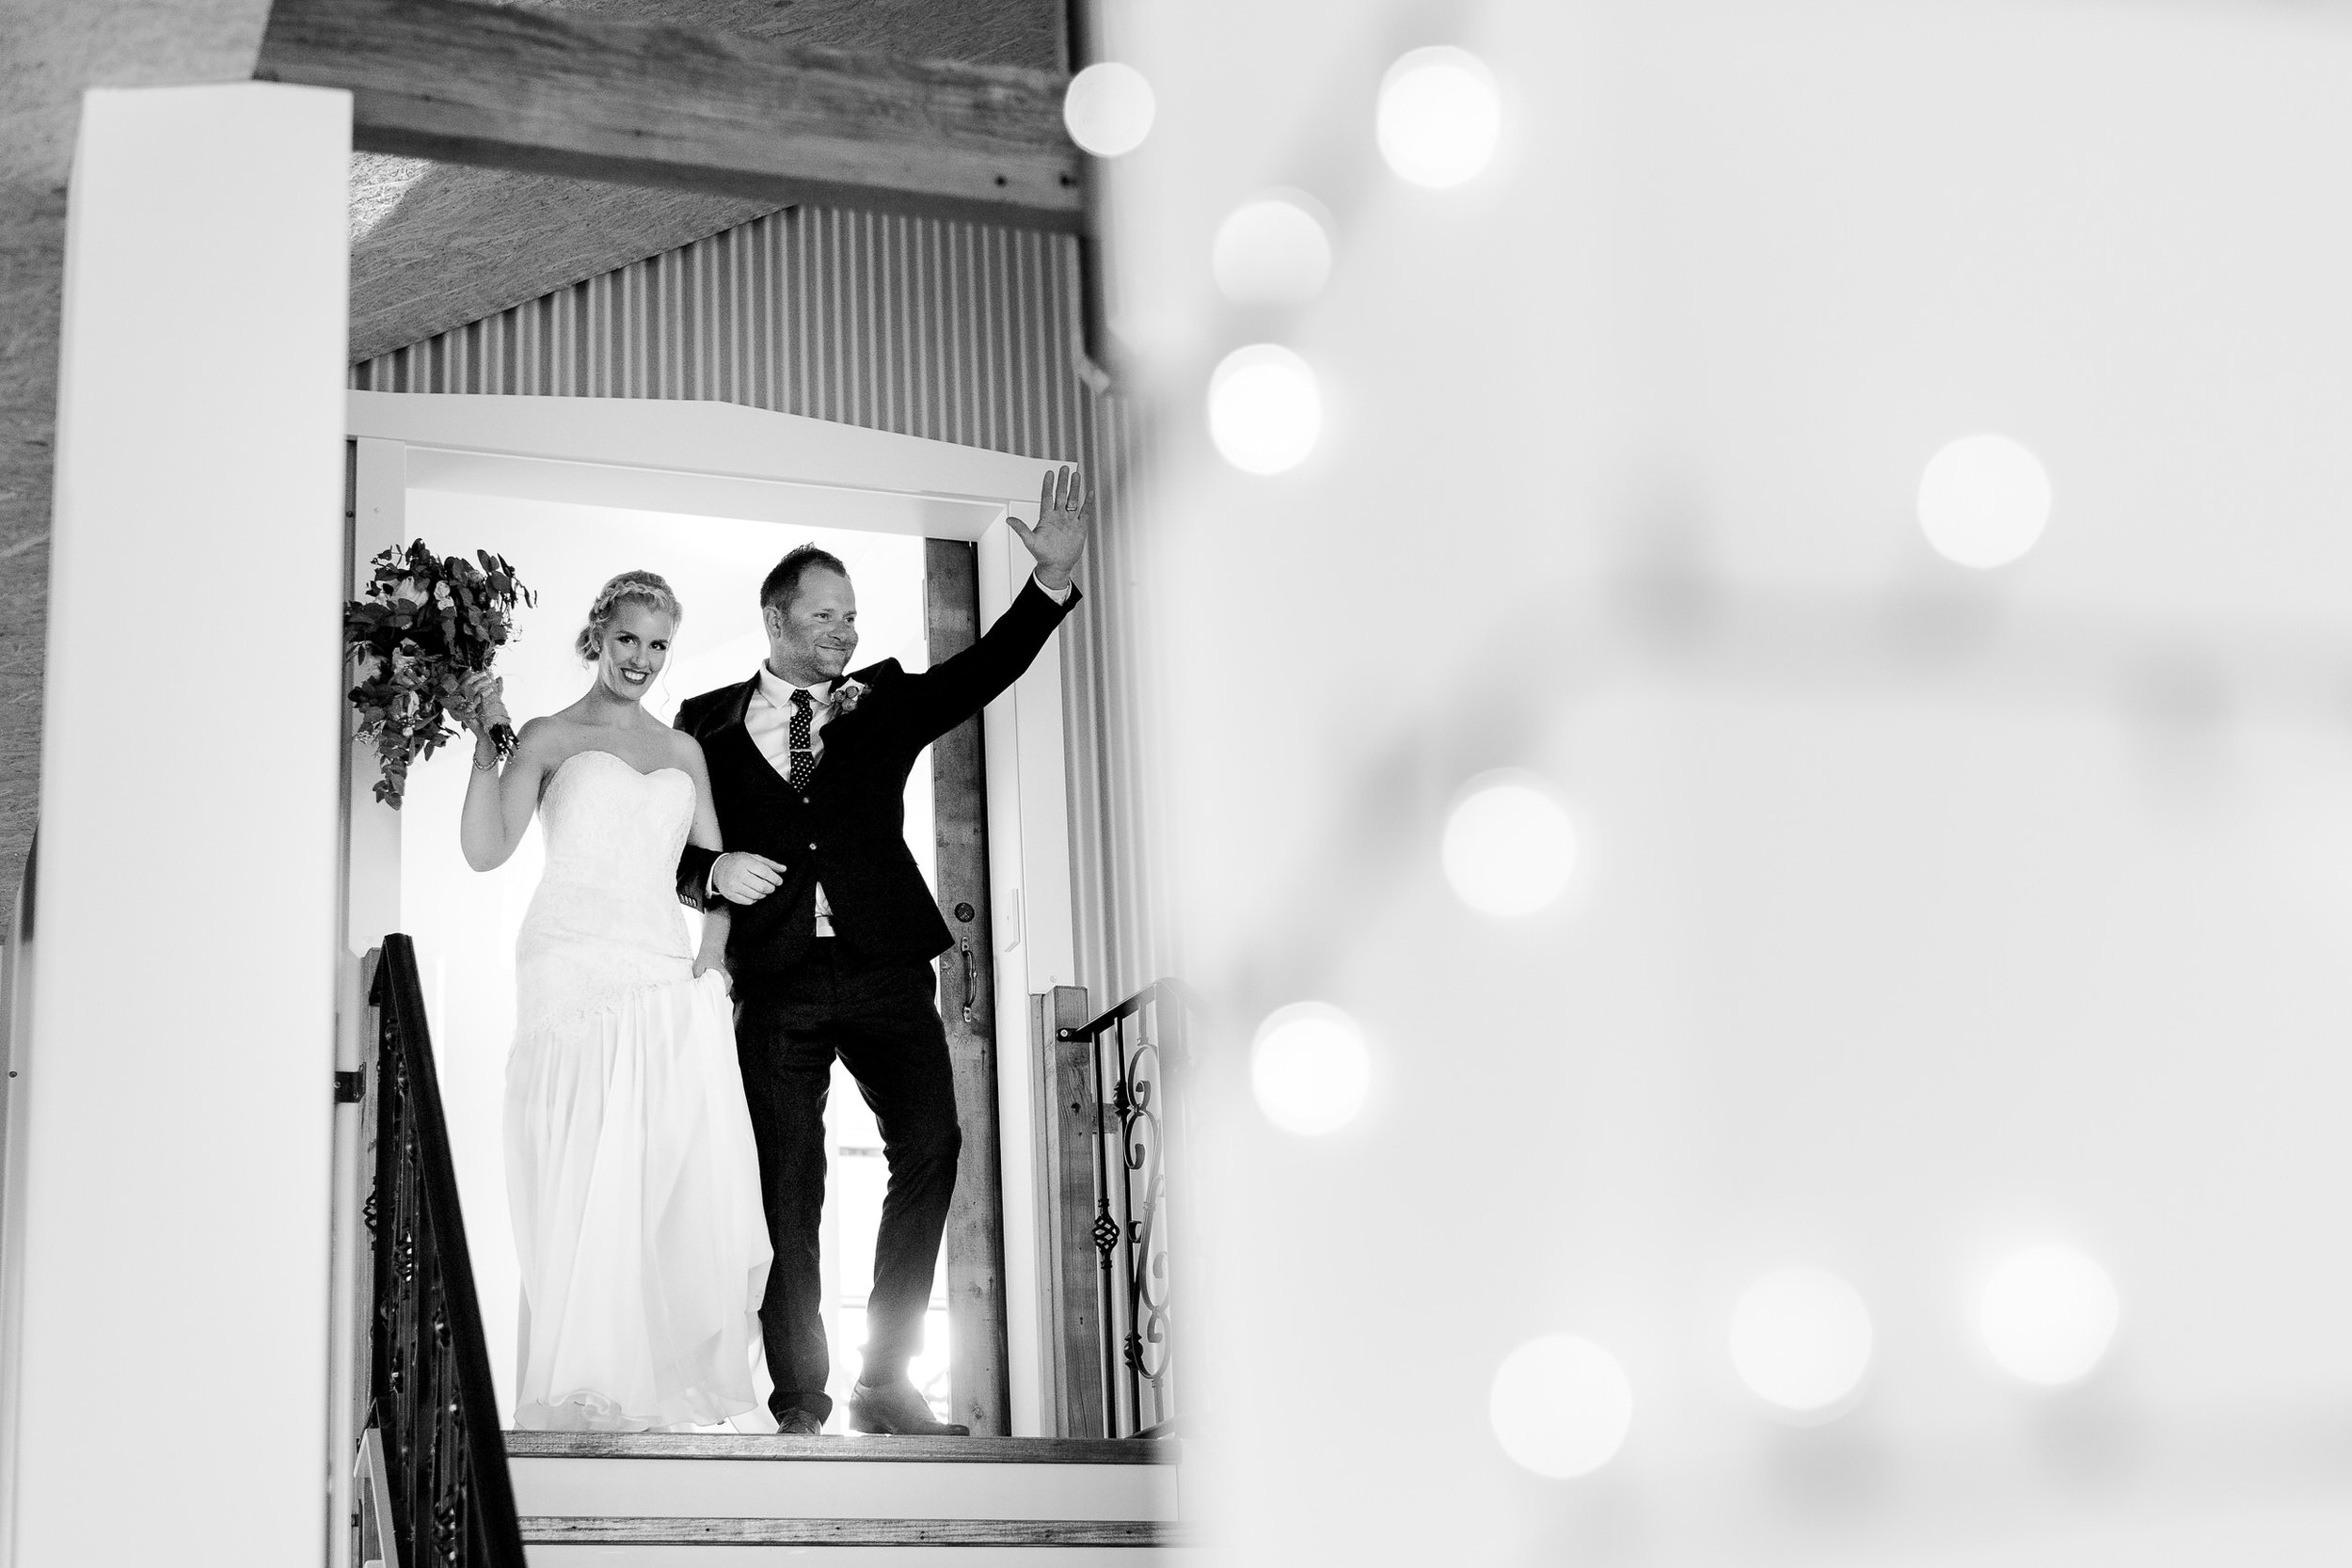 Justin_And_Jim_Photography_Byrchendale_Barn_Wedding77.JPG